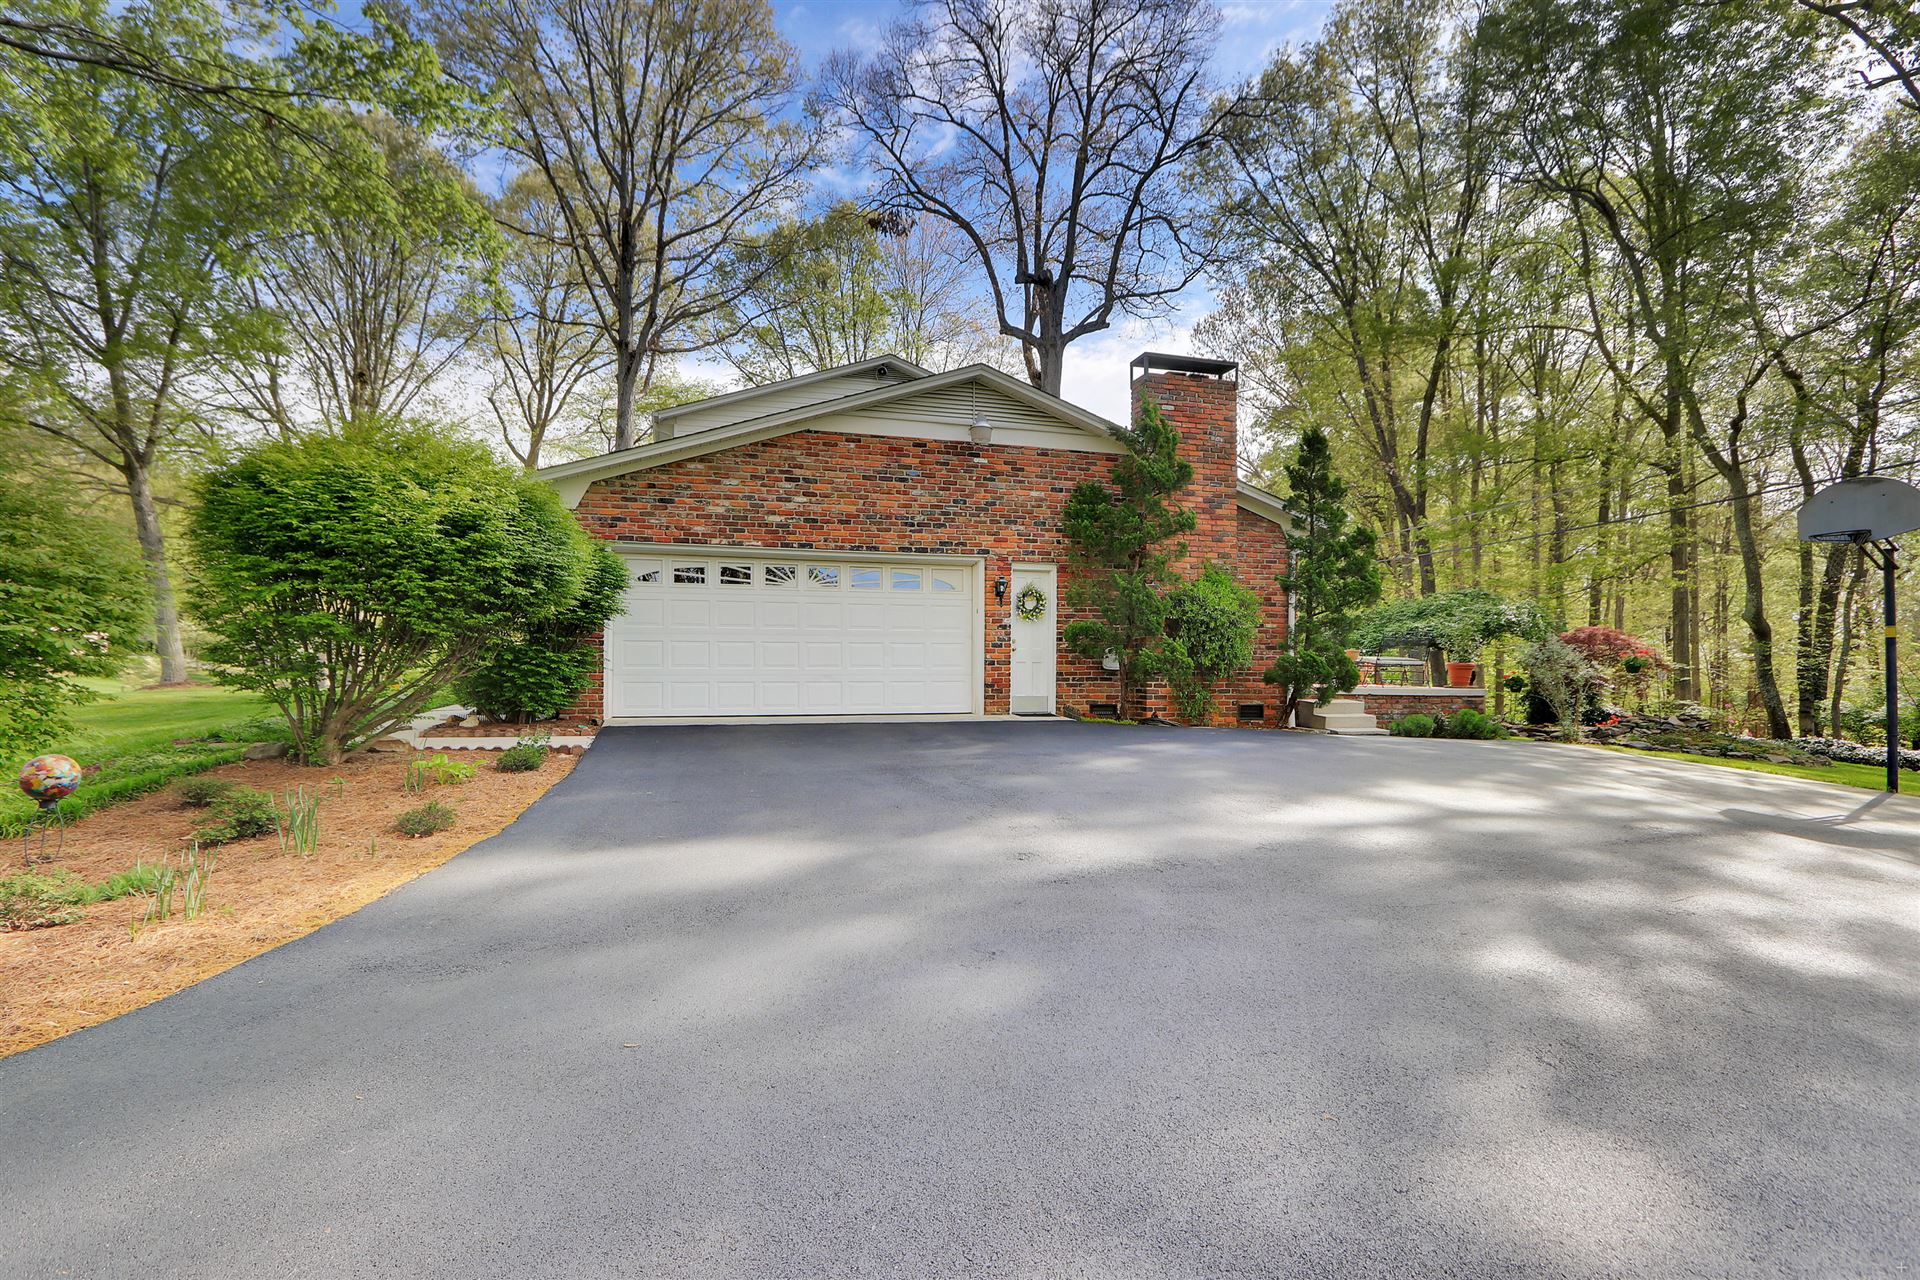 Photo of 5104 Catalina Rd, Knoxville, TN 37918 (MLS # 1148966)